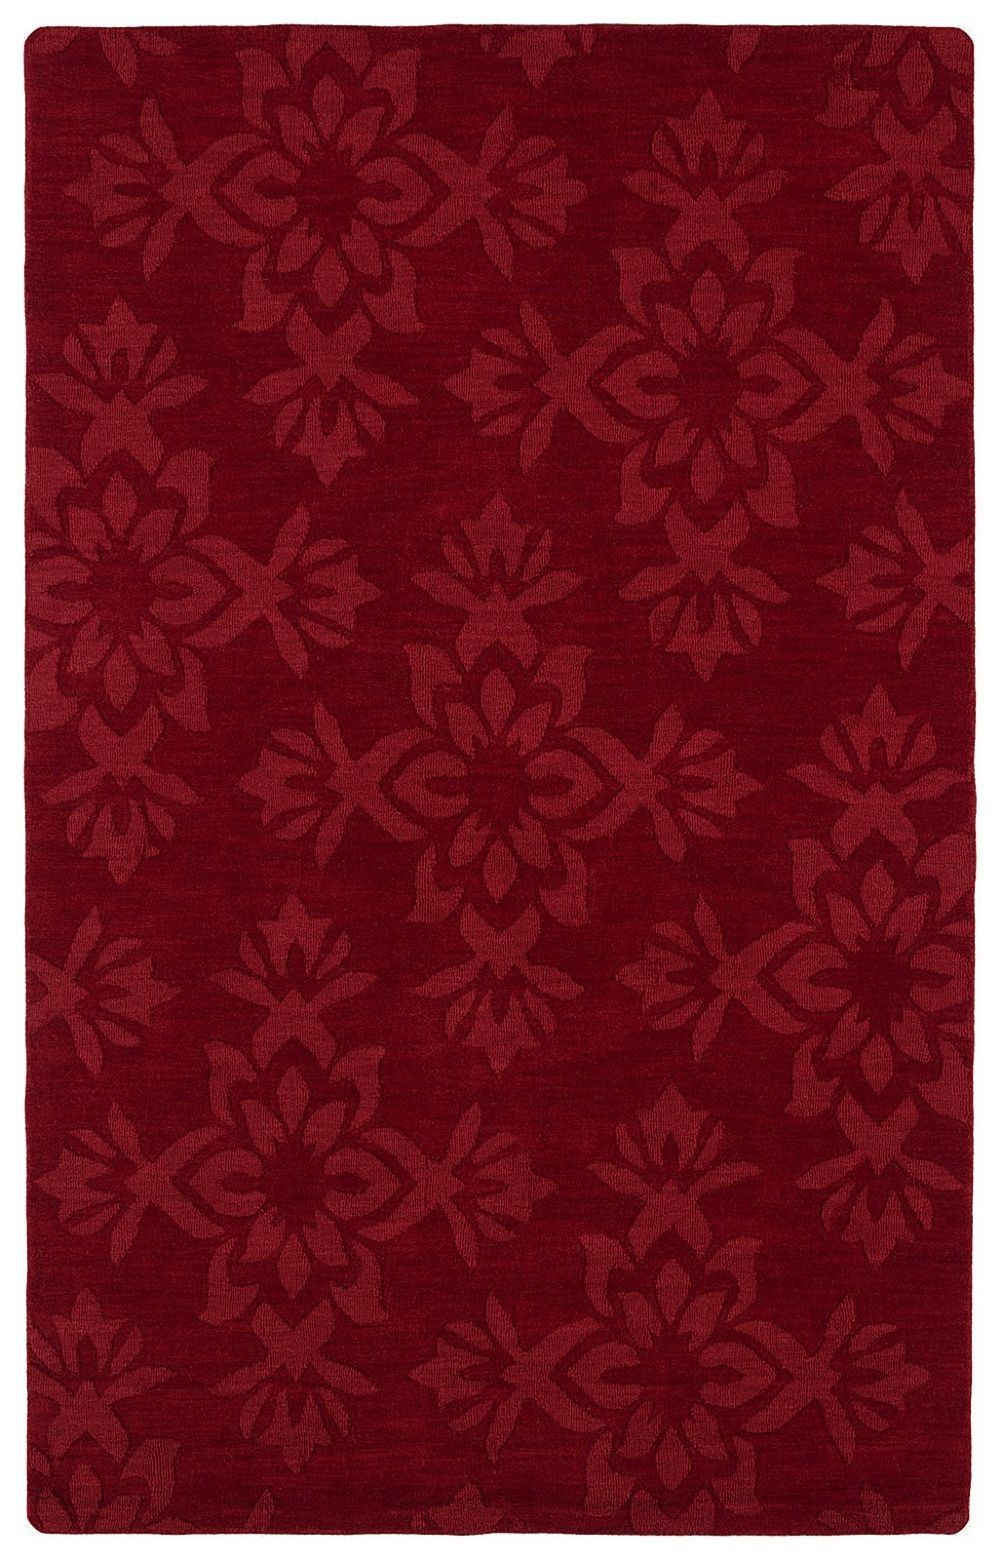 kaleen imprints classic contemporary area rug collection